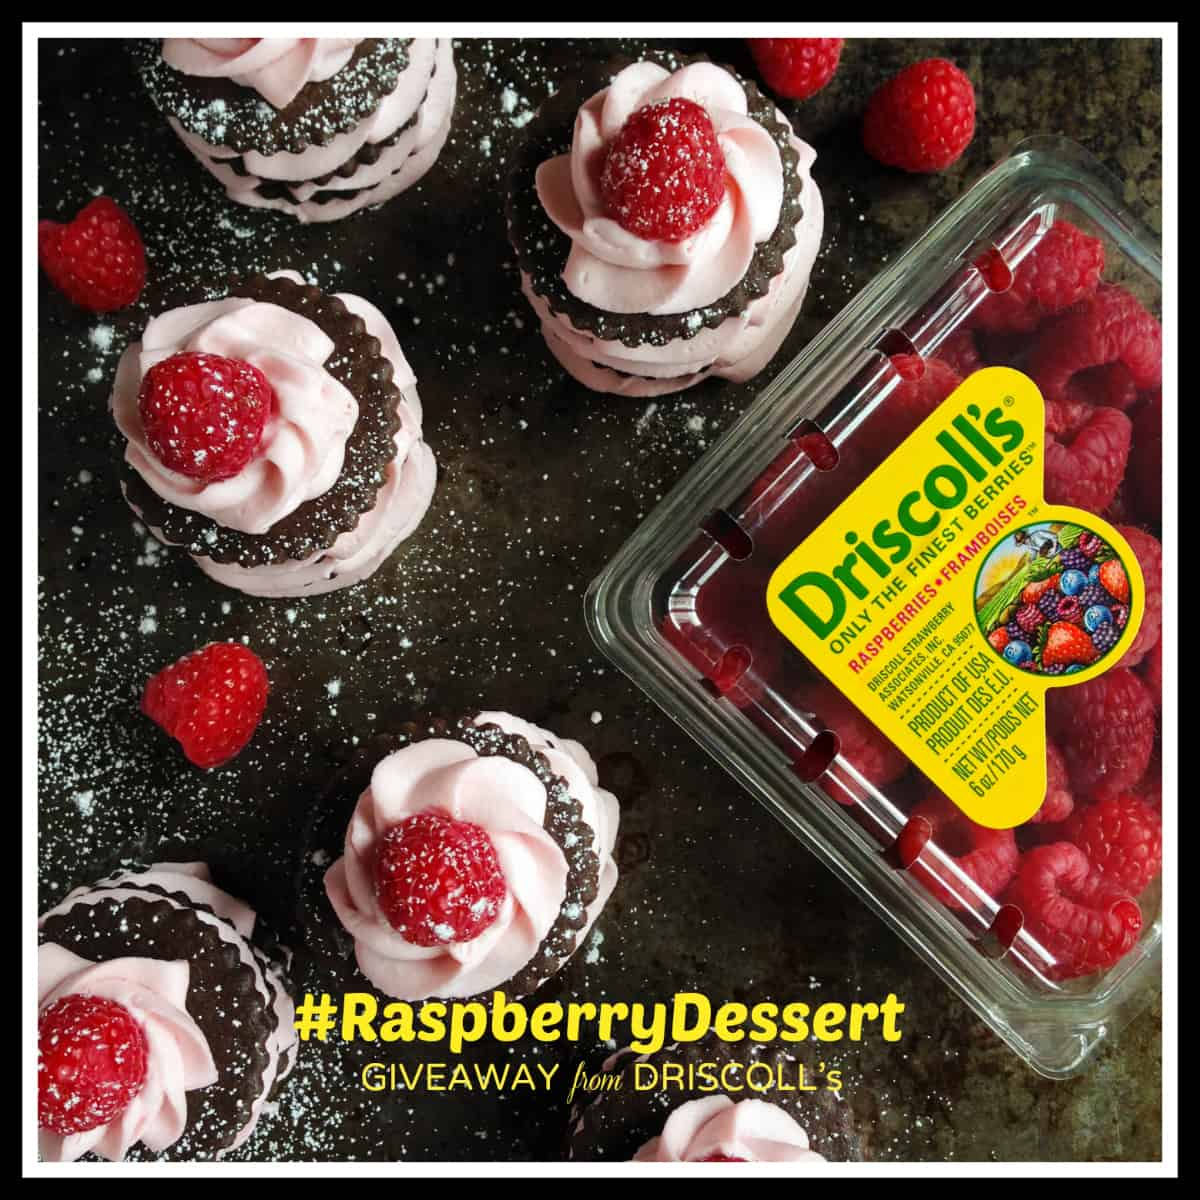 WIN $100 in berries! #RaspberryDessert #Giveaway - afarmgirlsdabbles.com